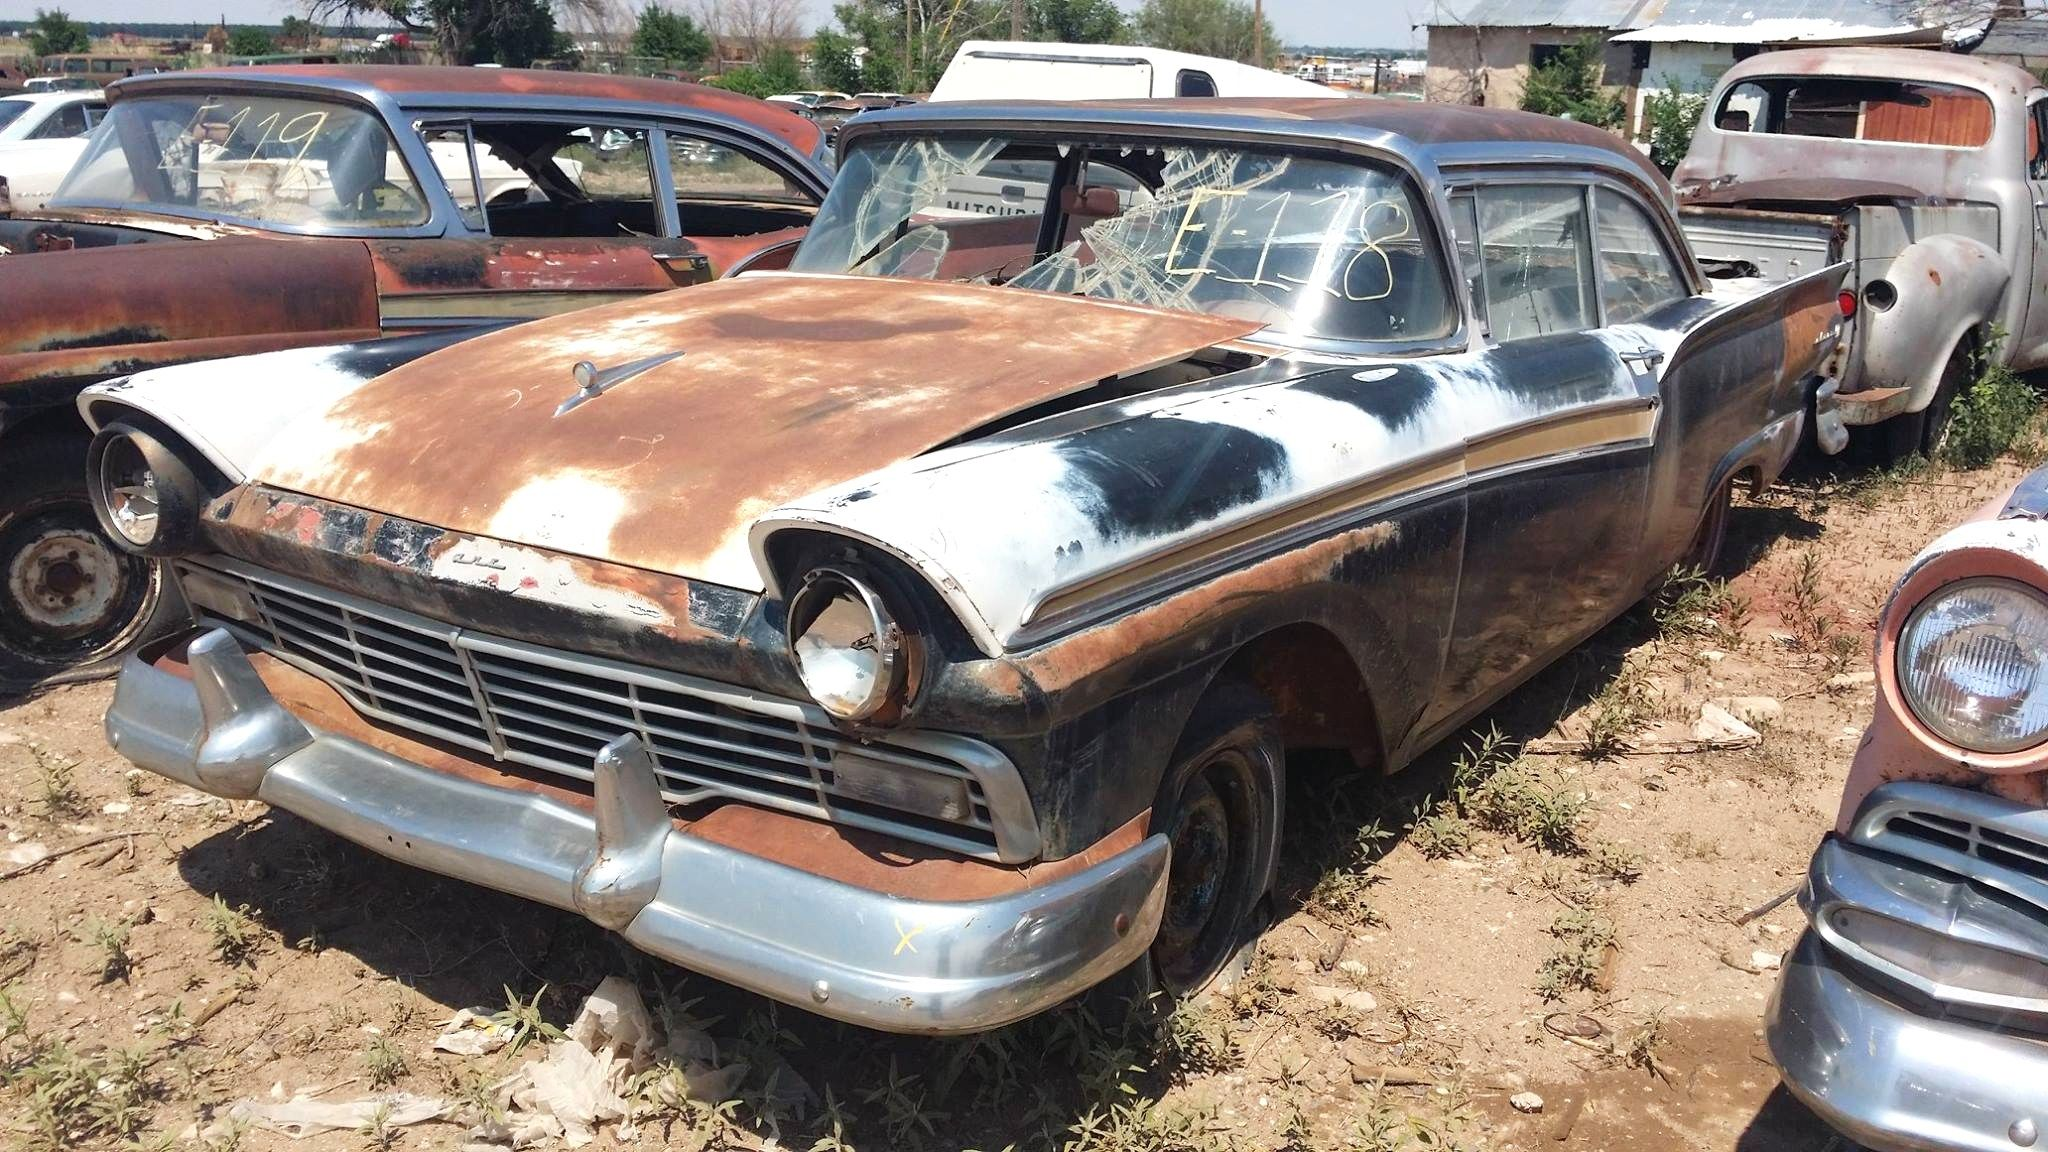 Last chance for close encounter at roswell salvage yard